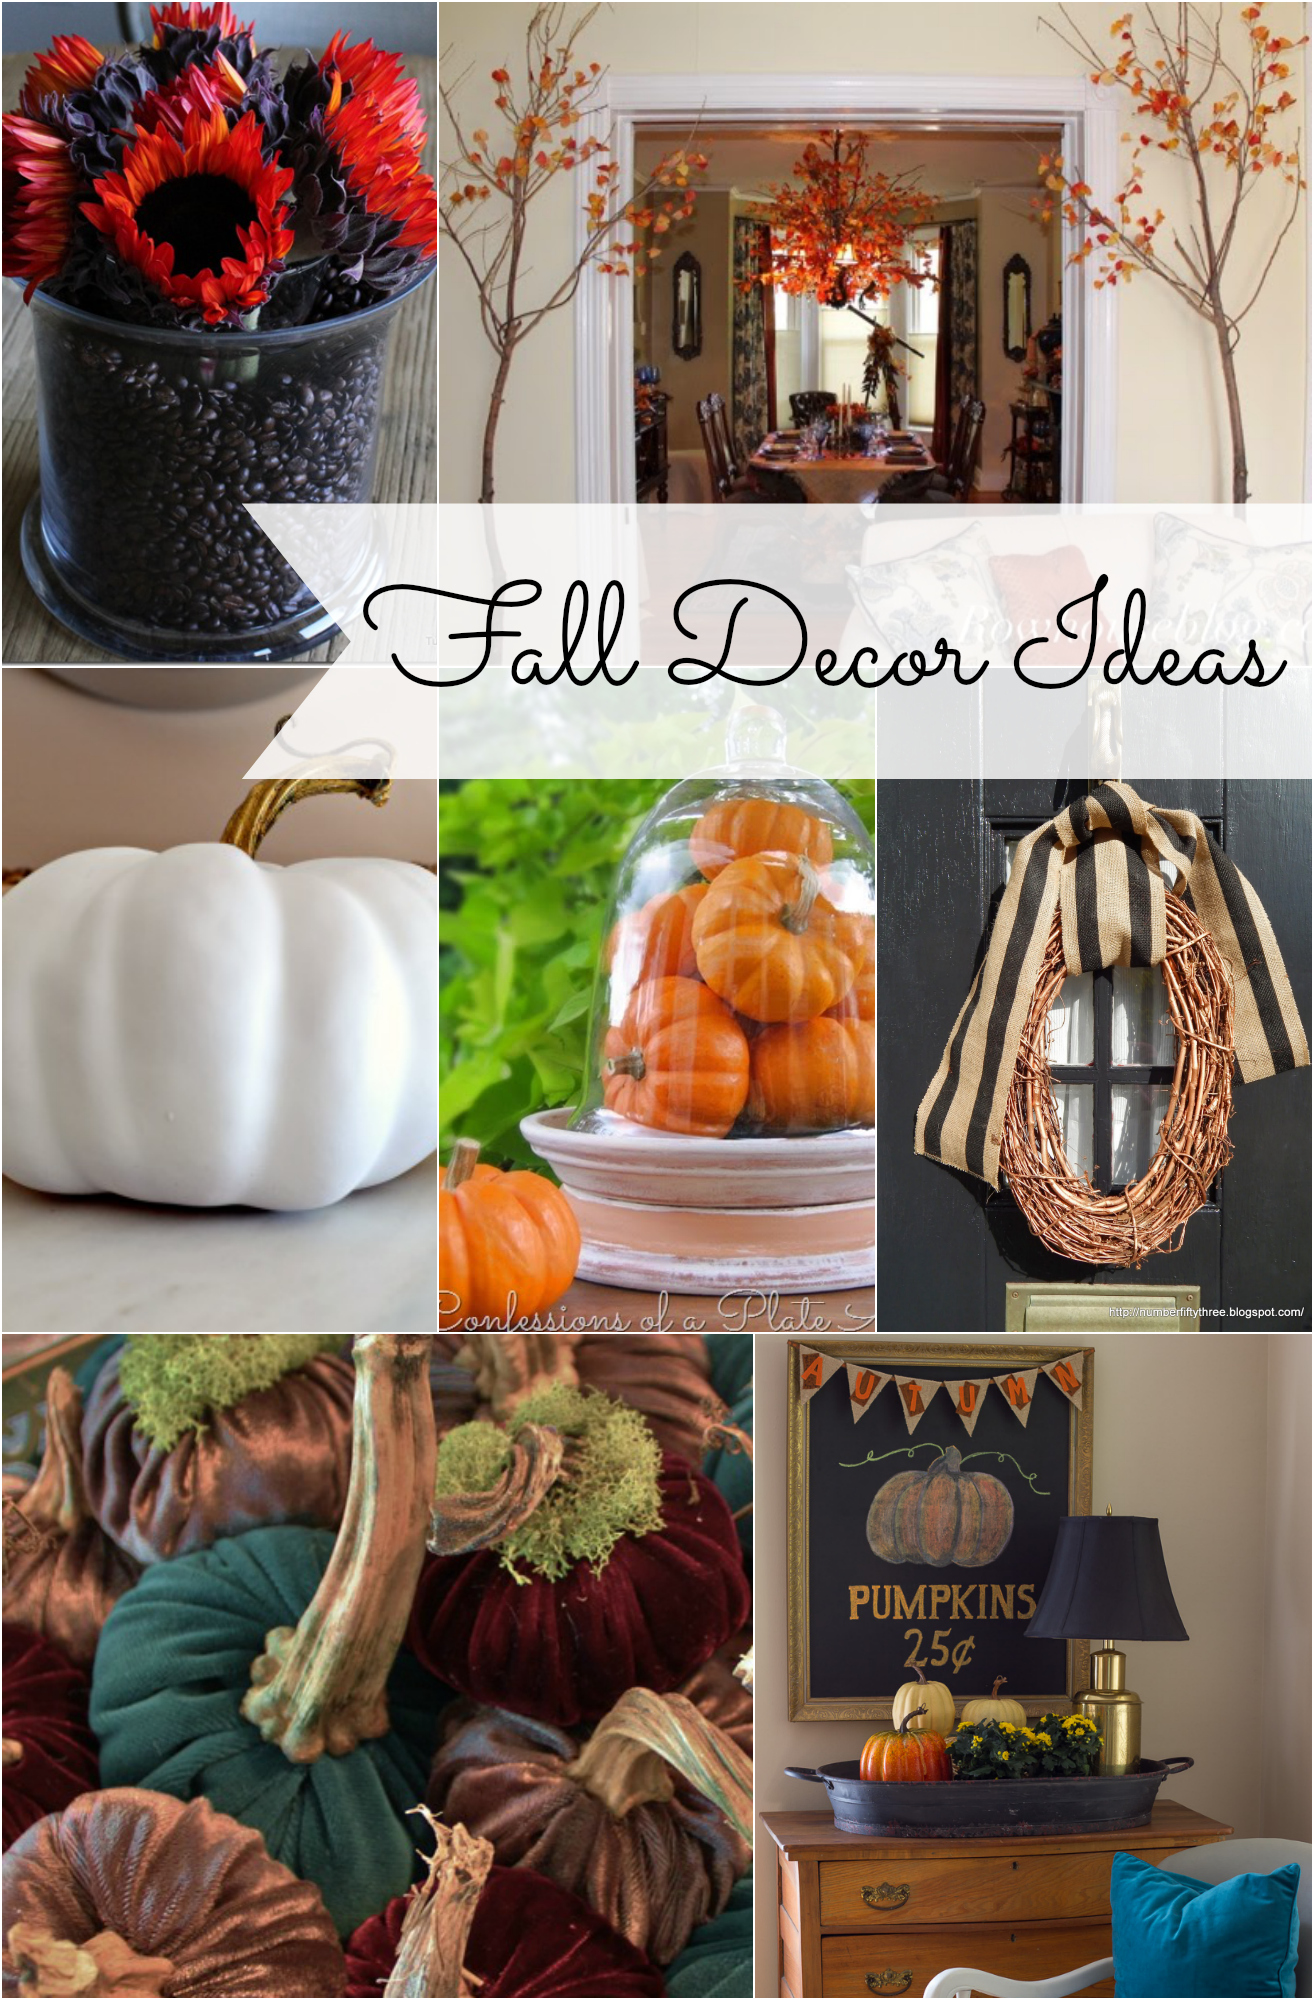 Decoration Ideas: Fall Decorating Ideas